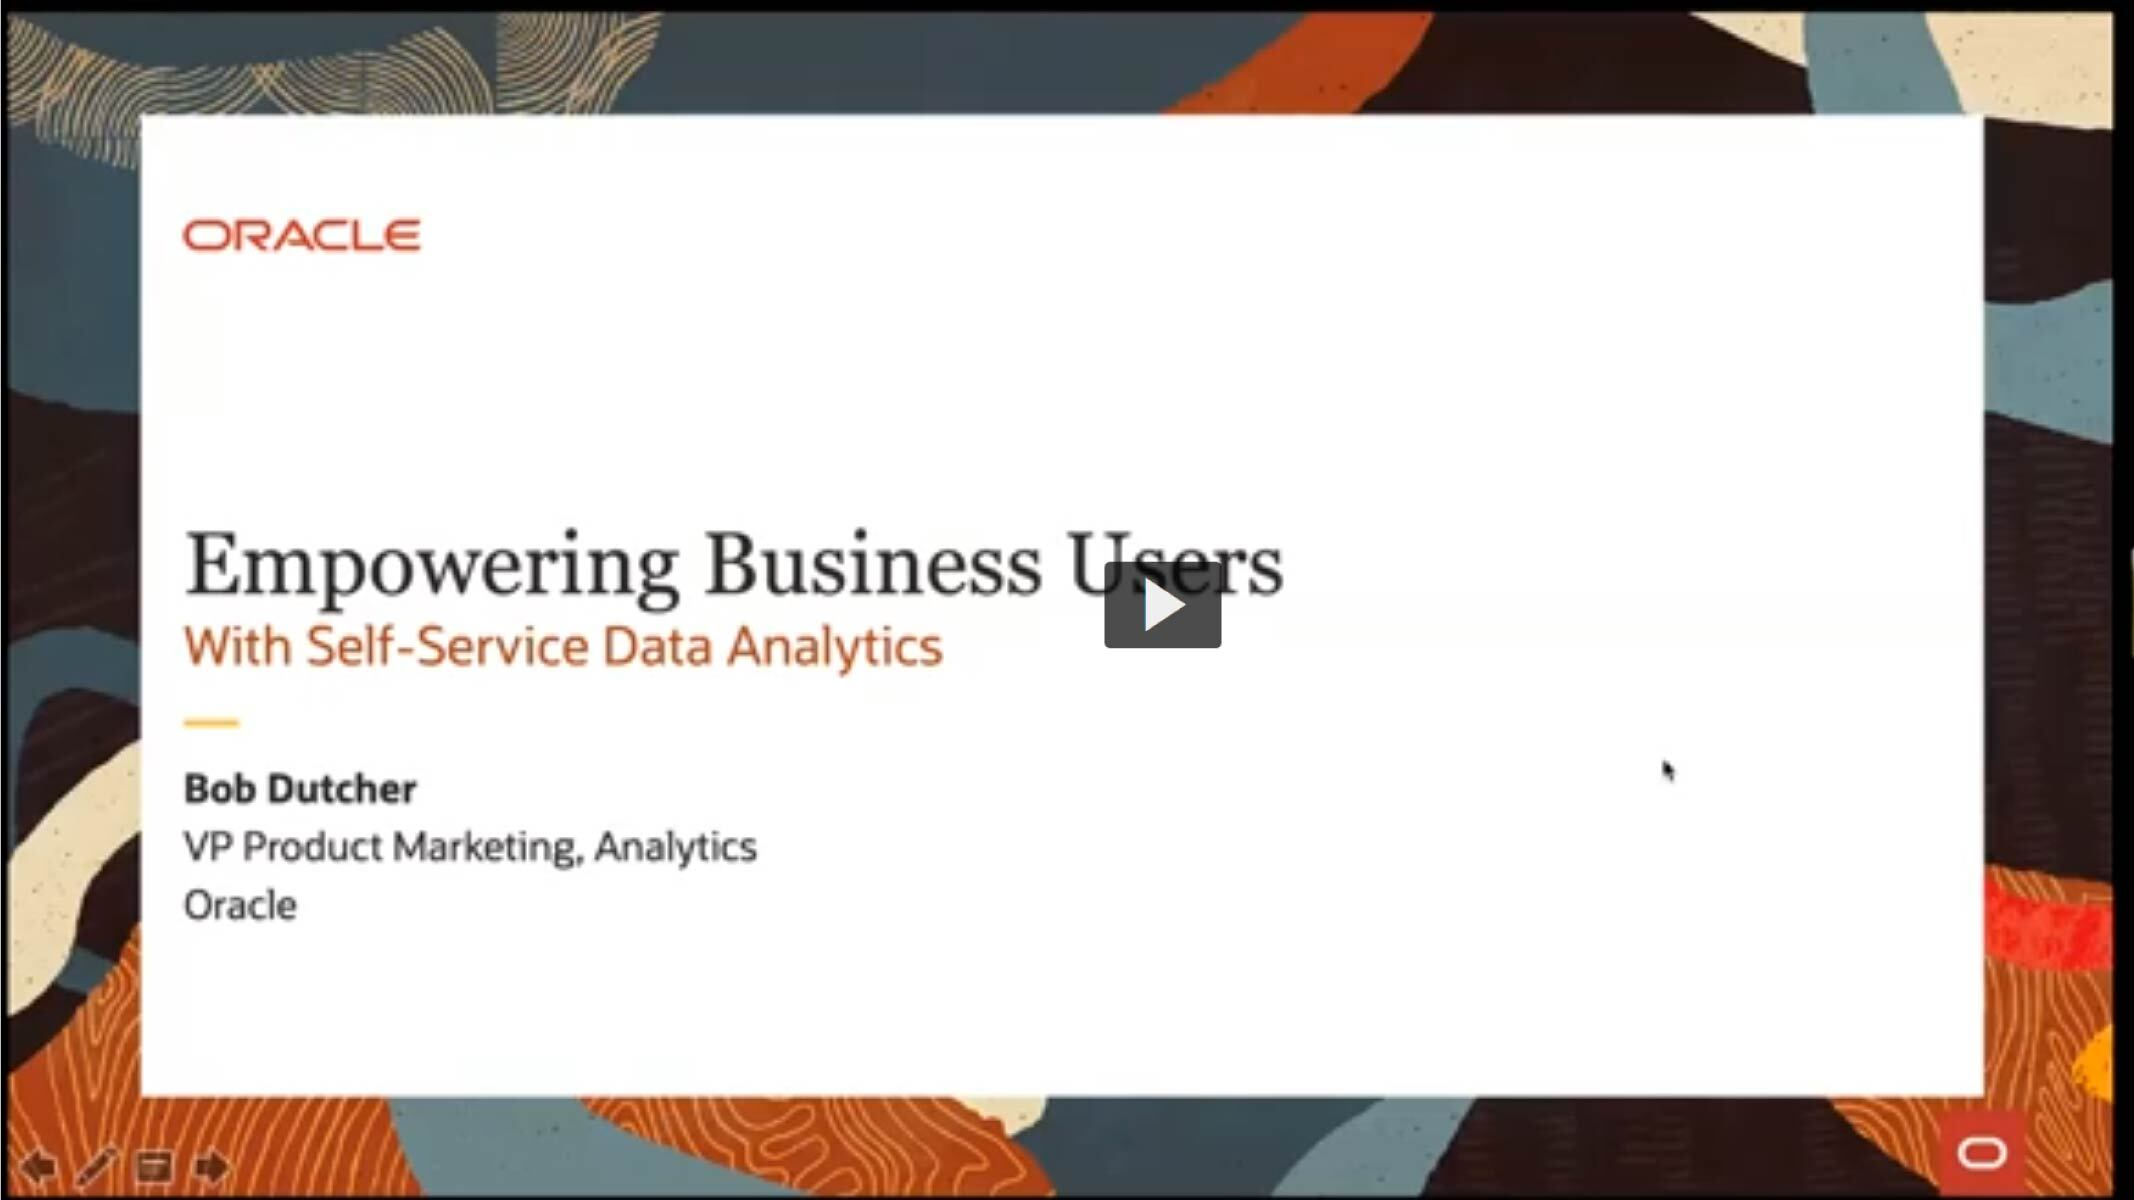 Empowering Business Users with Self-Service Analytics